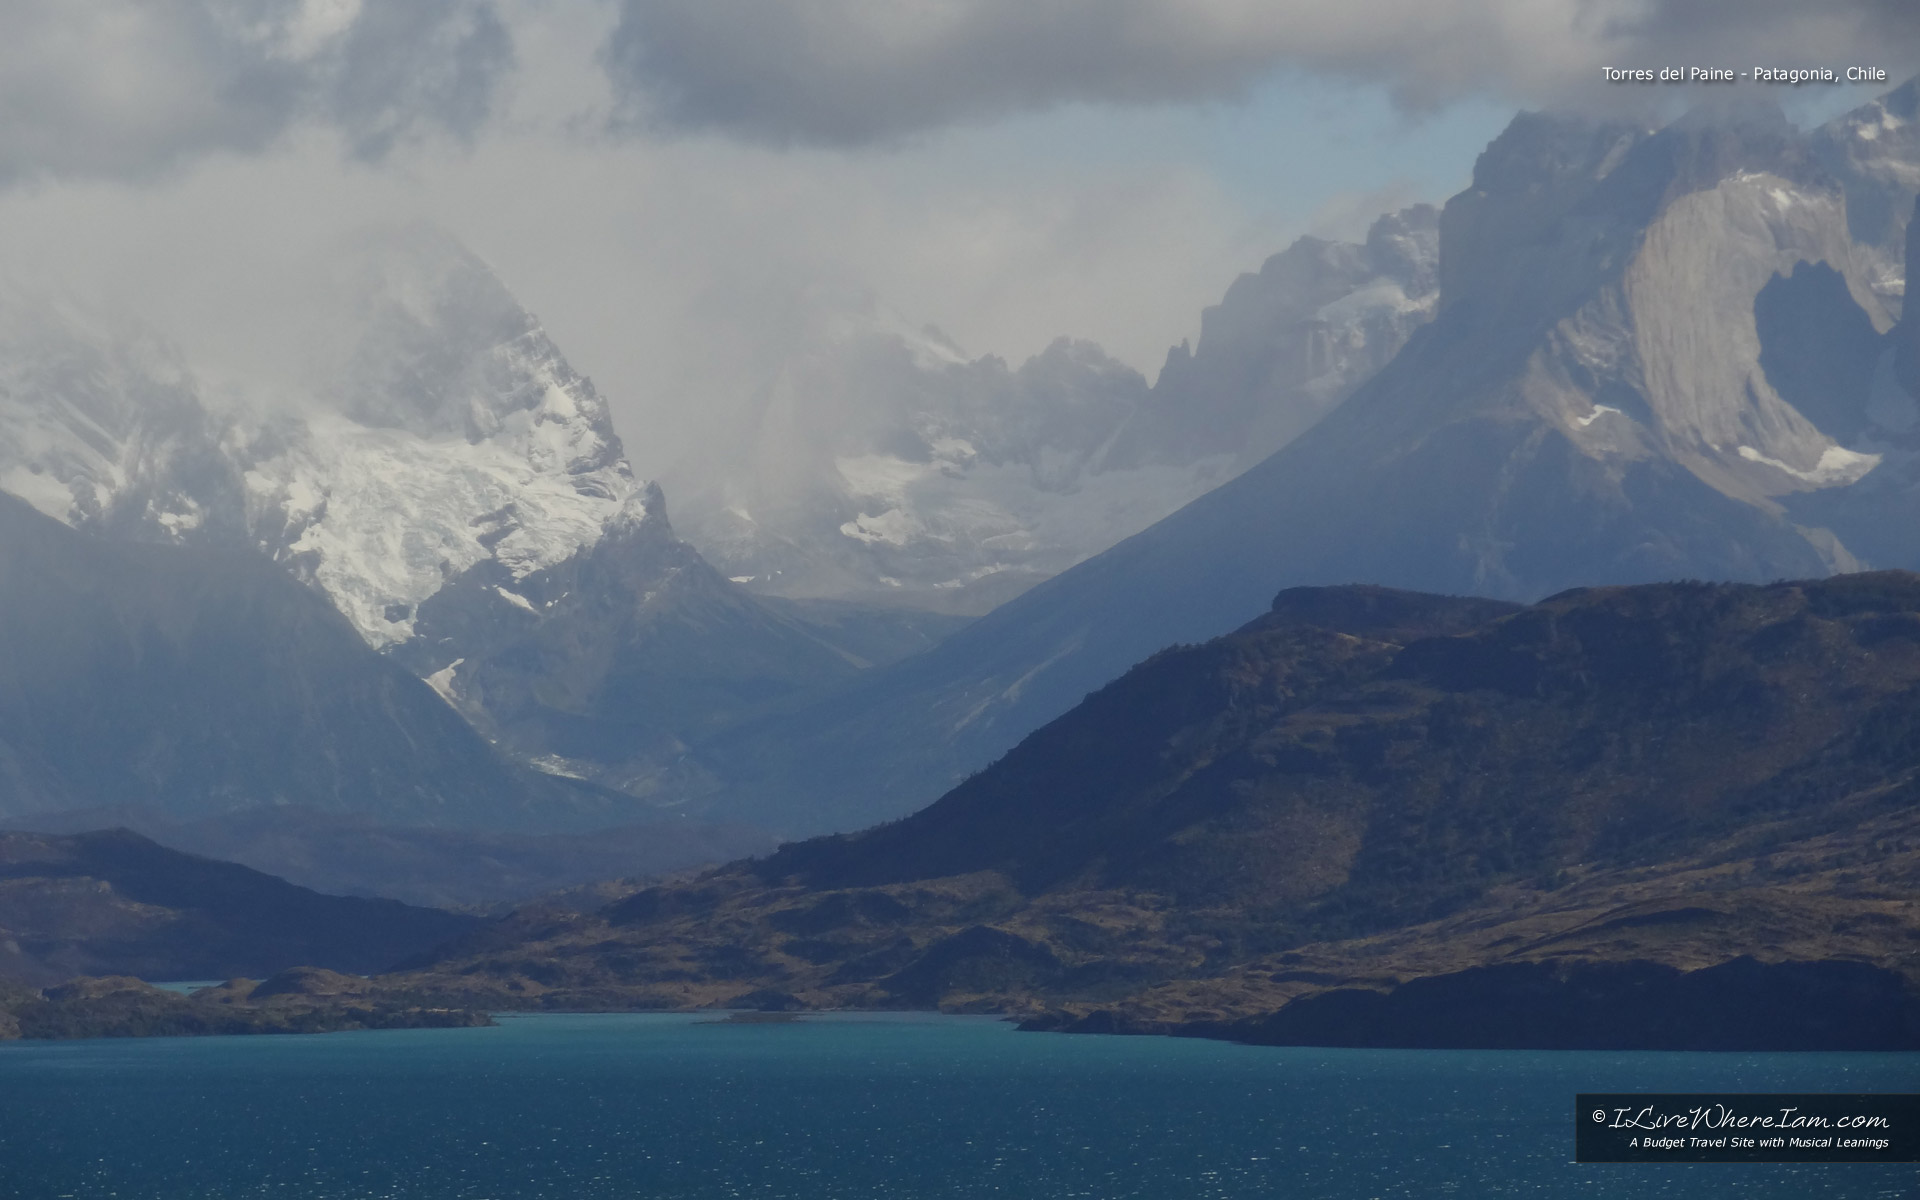 Torres del paine patagonia chile wallpapers free download download now voltagebd Gallery